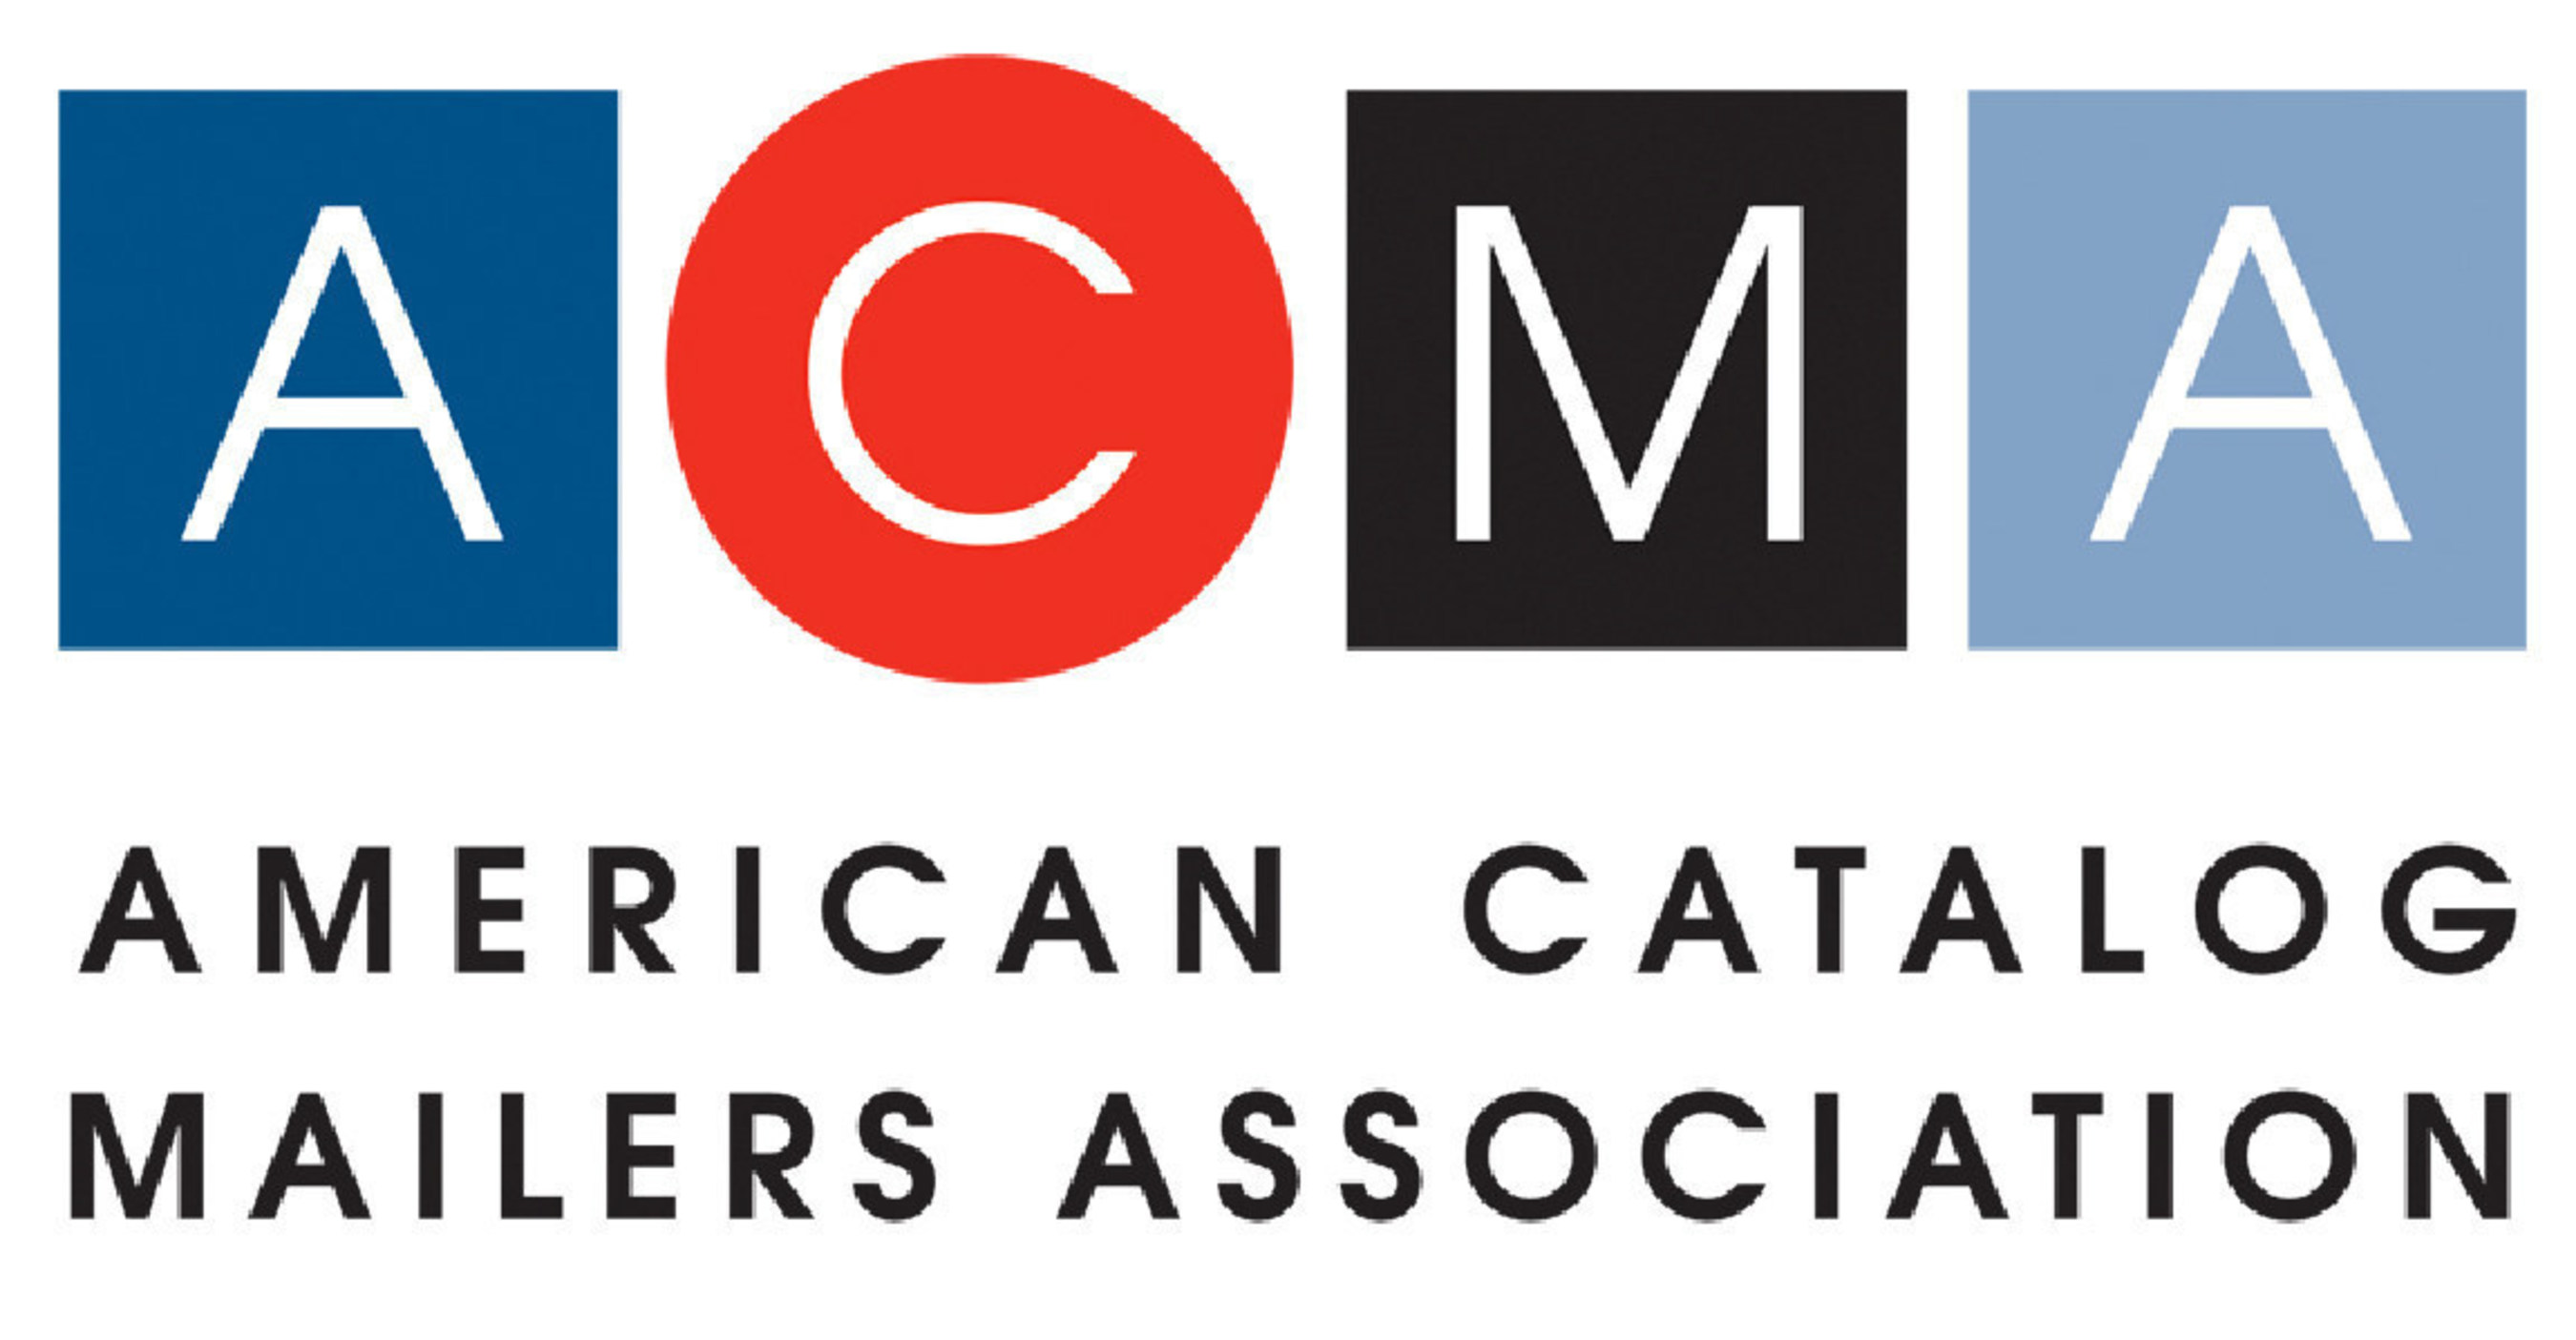 American Catalog Mailers Association (ACMA)